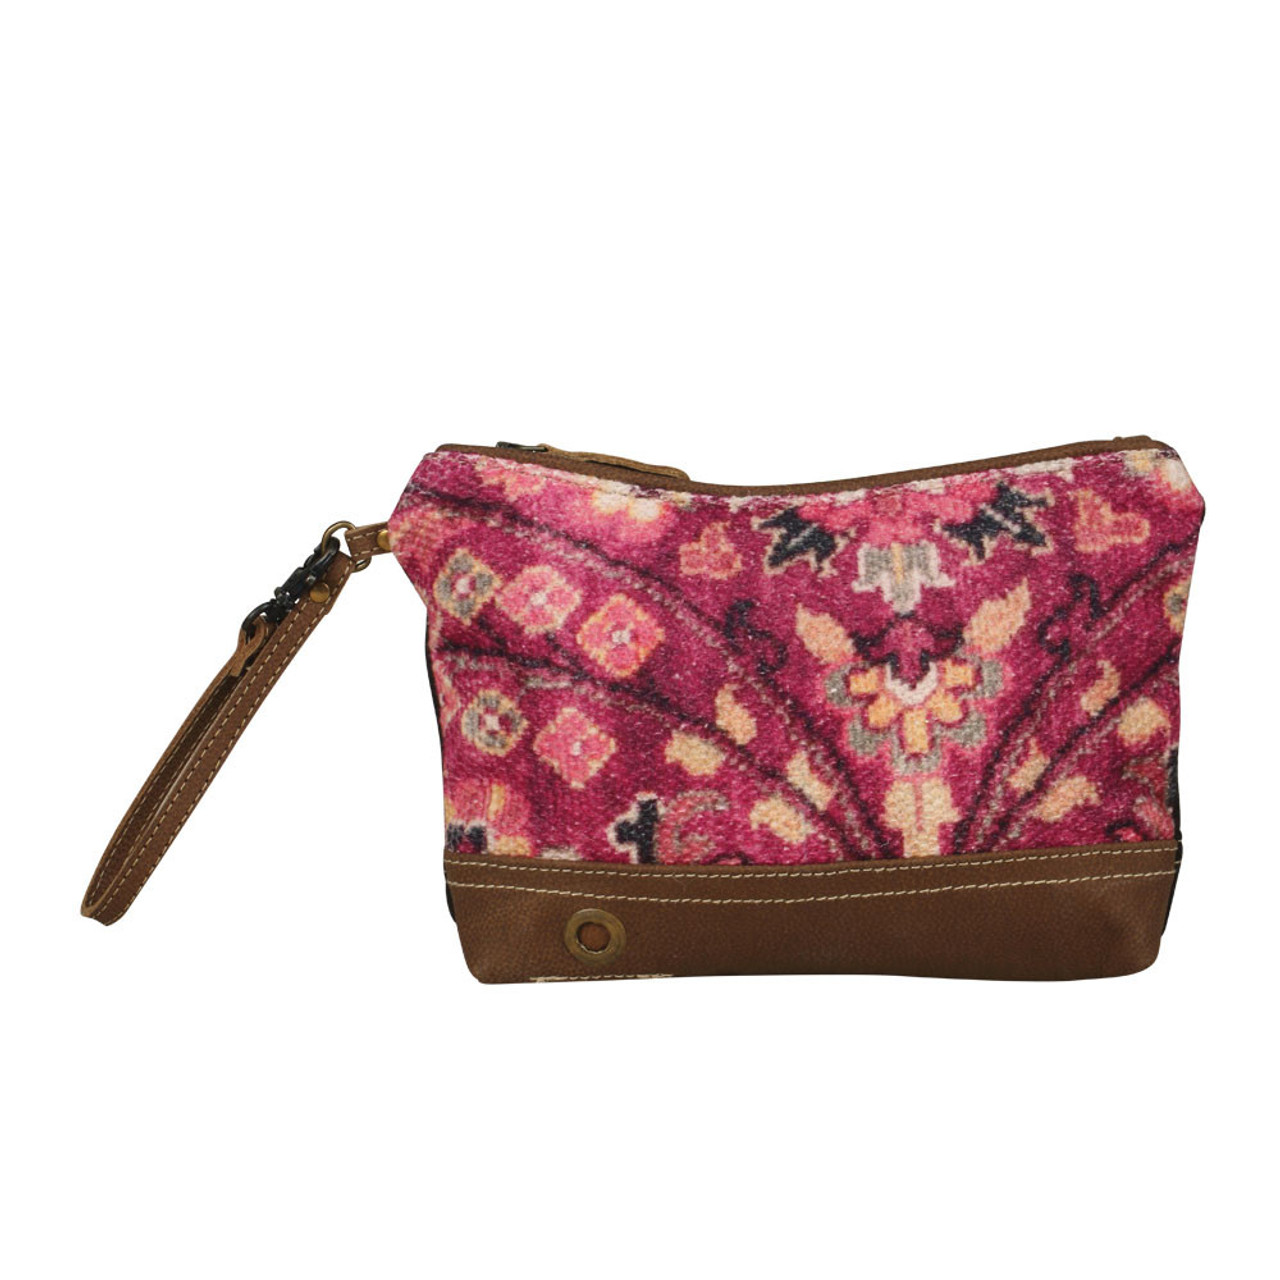 Leather, canvas & rug clutch or wristlet.  The front has a vibrant pink floral rug print with main zipper closure.  The back is solid canvas.   No interior or exterior pockets.